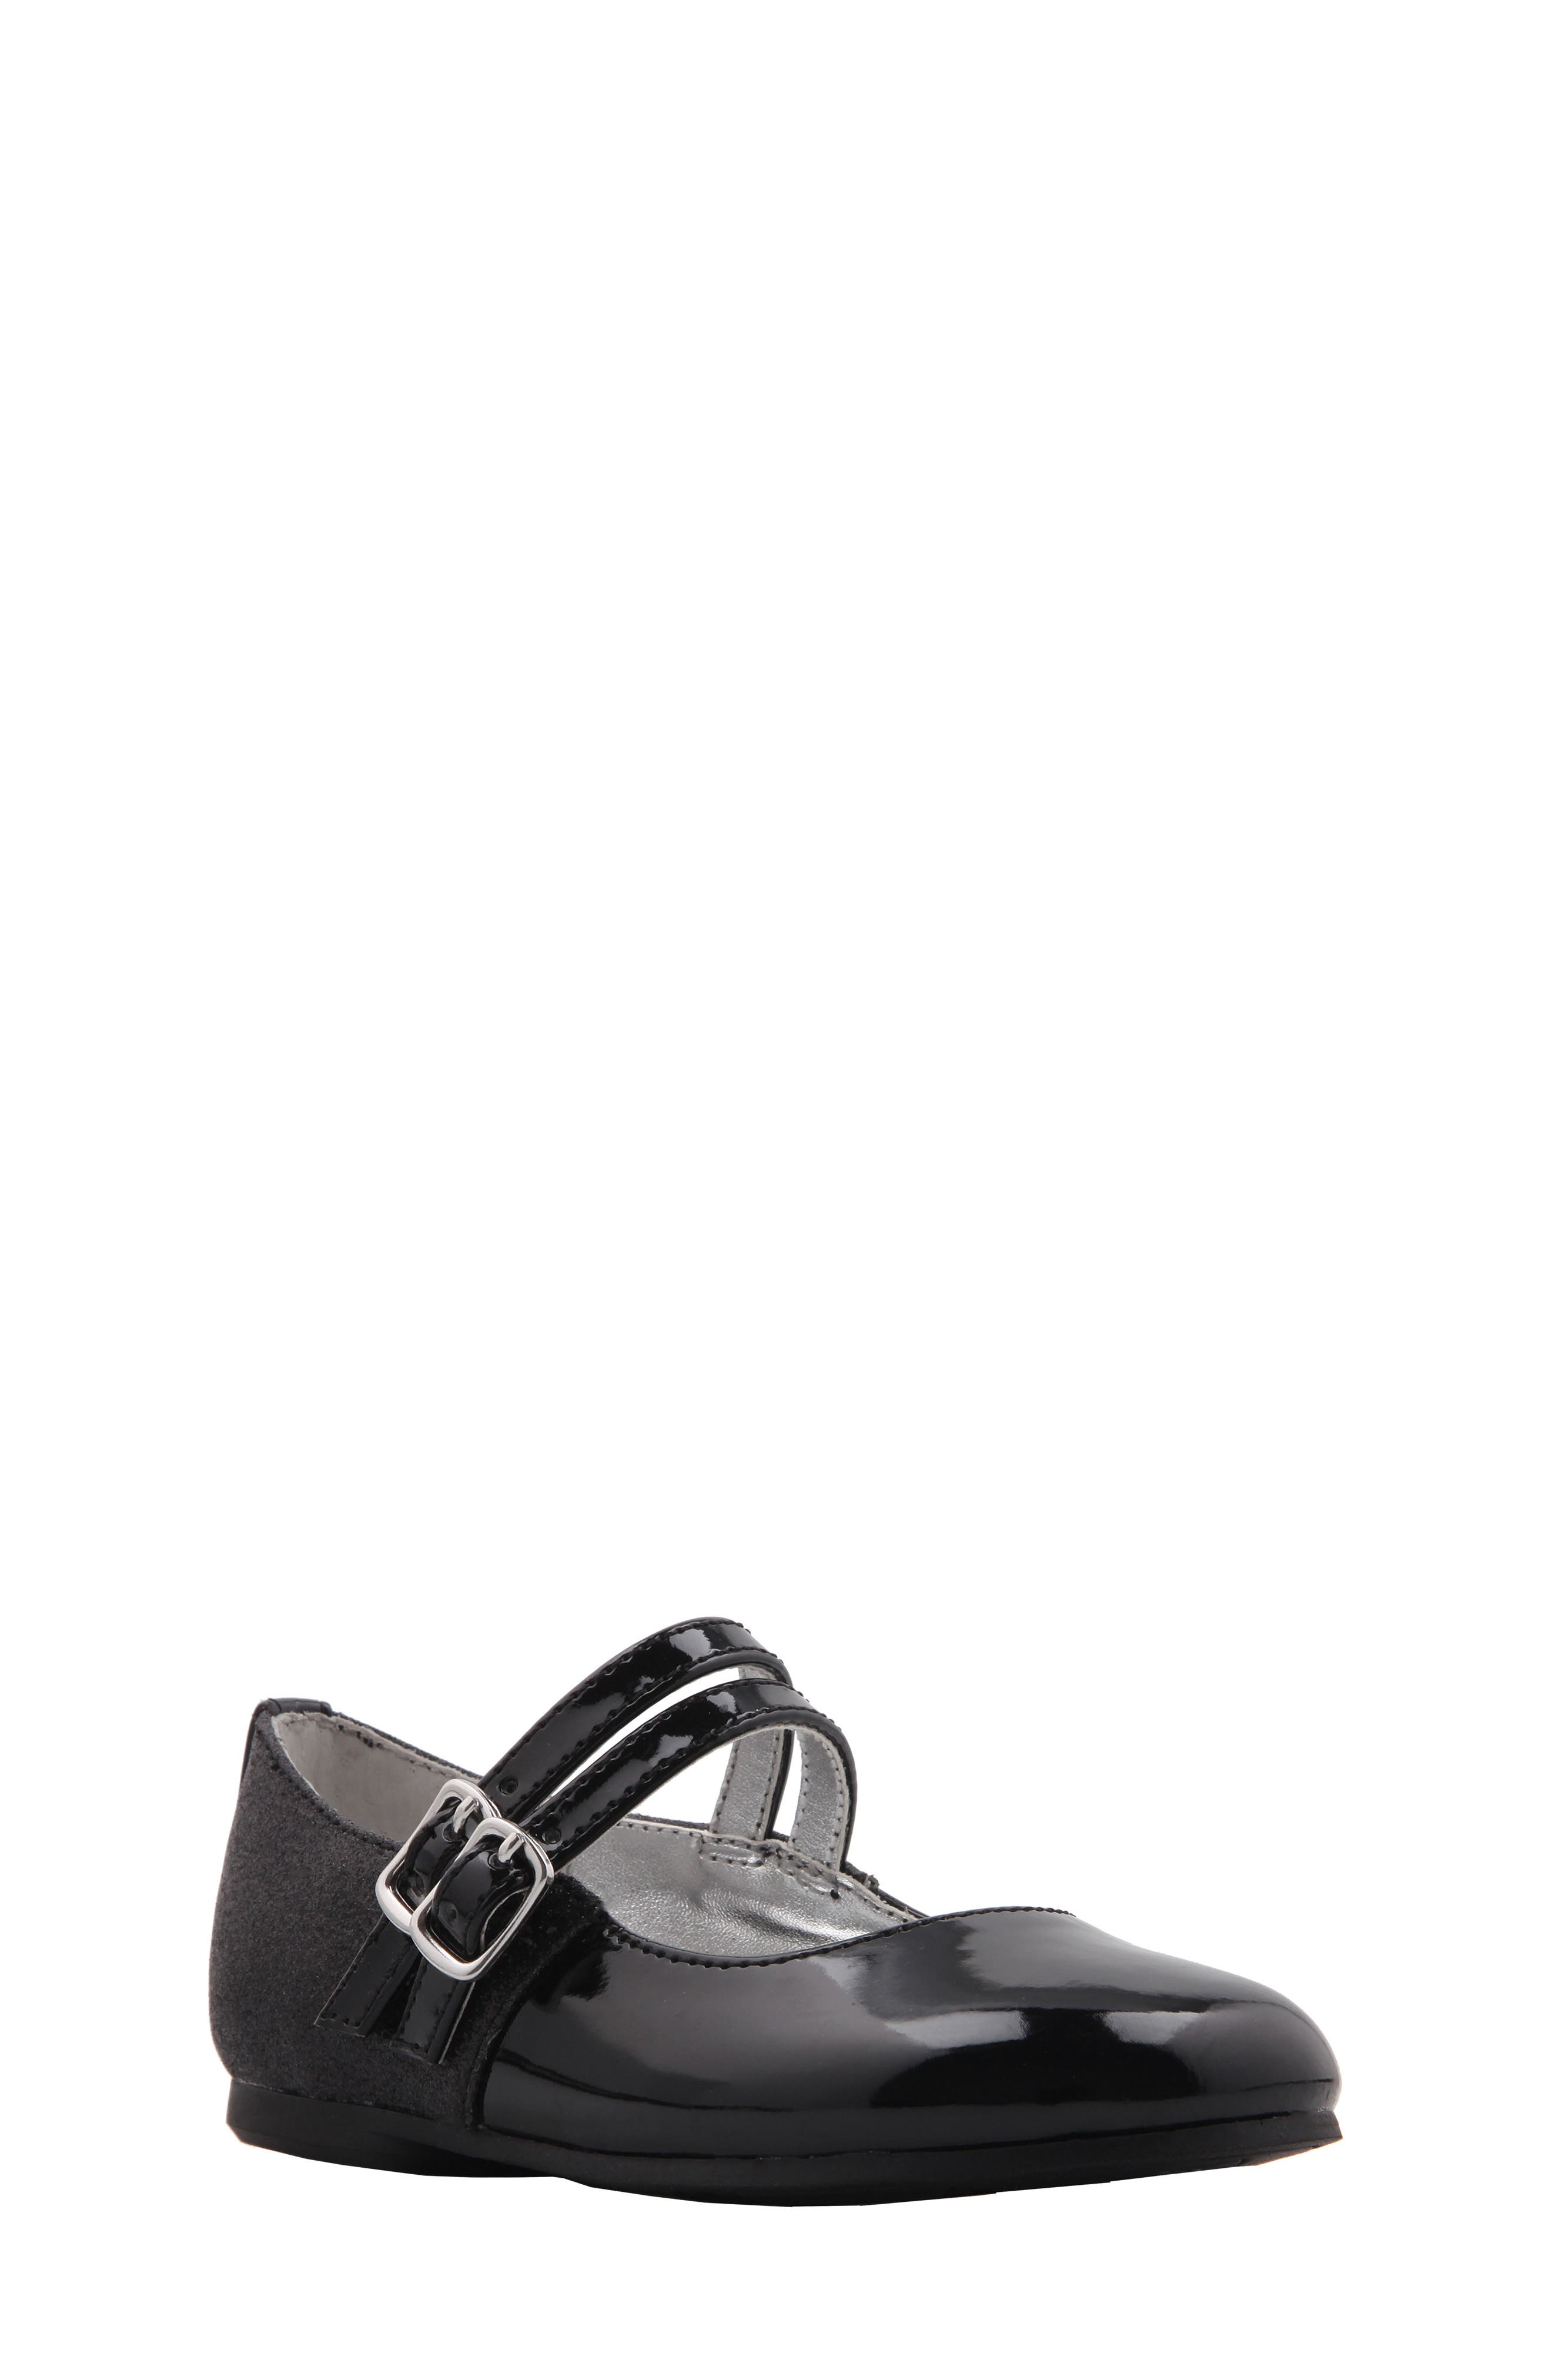 Genette Double-Strap Mary Jane Flat,                         Main,                         color, 003